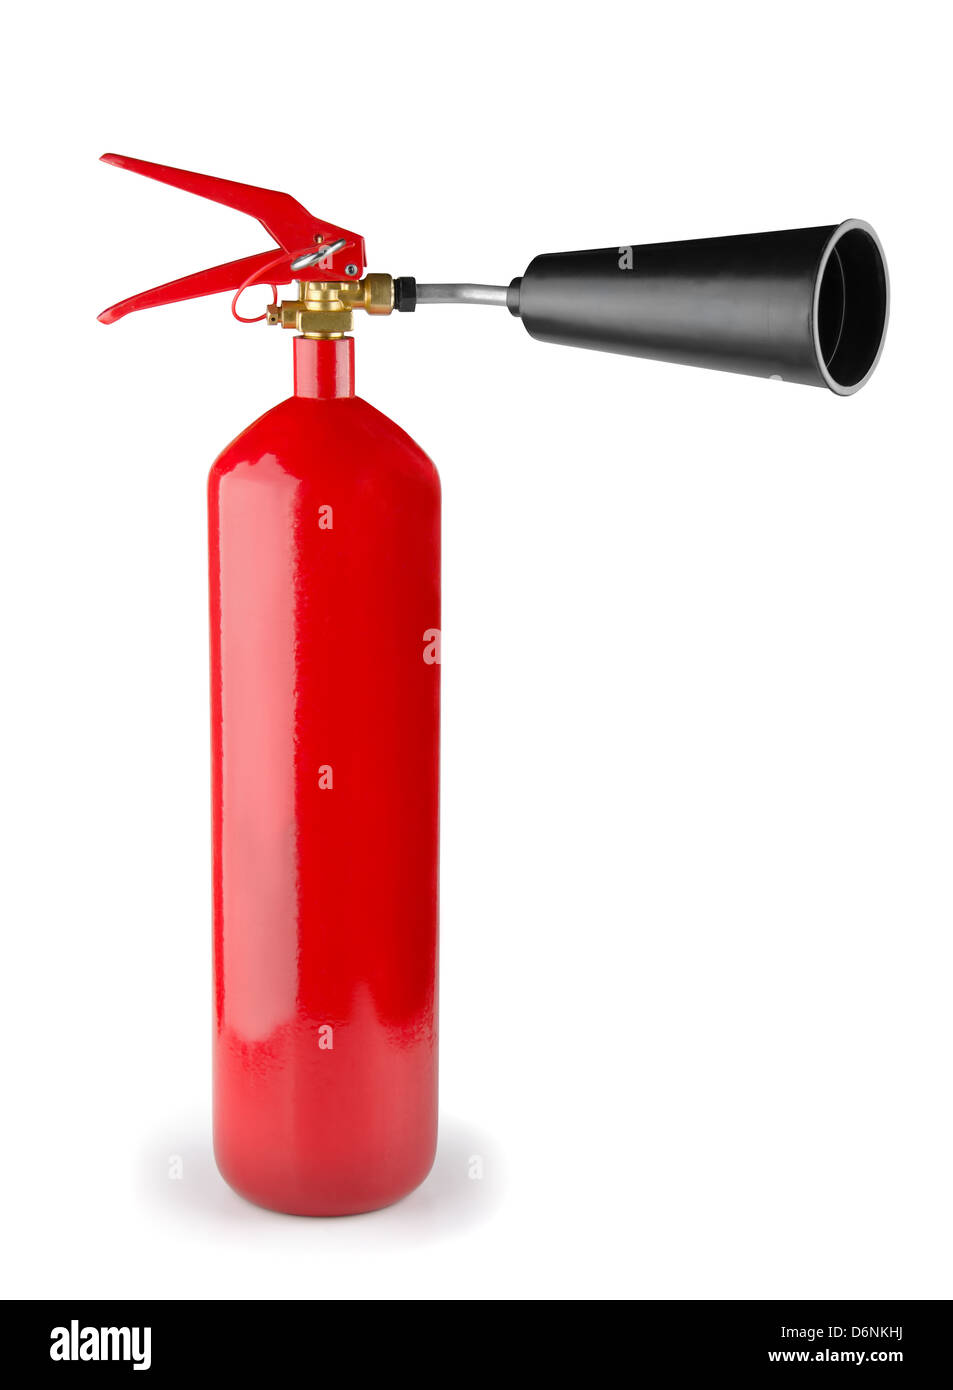 Red fire extinguisher isolated on white - Stock Image